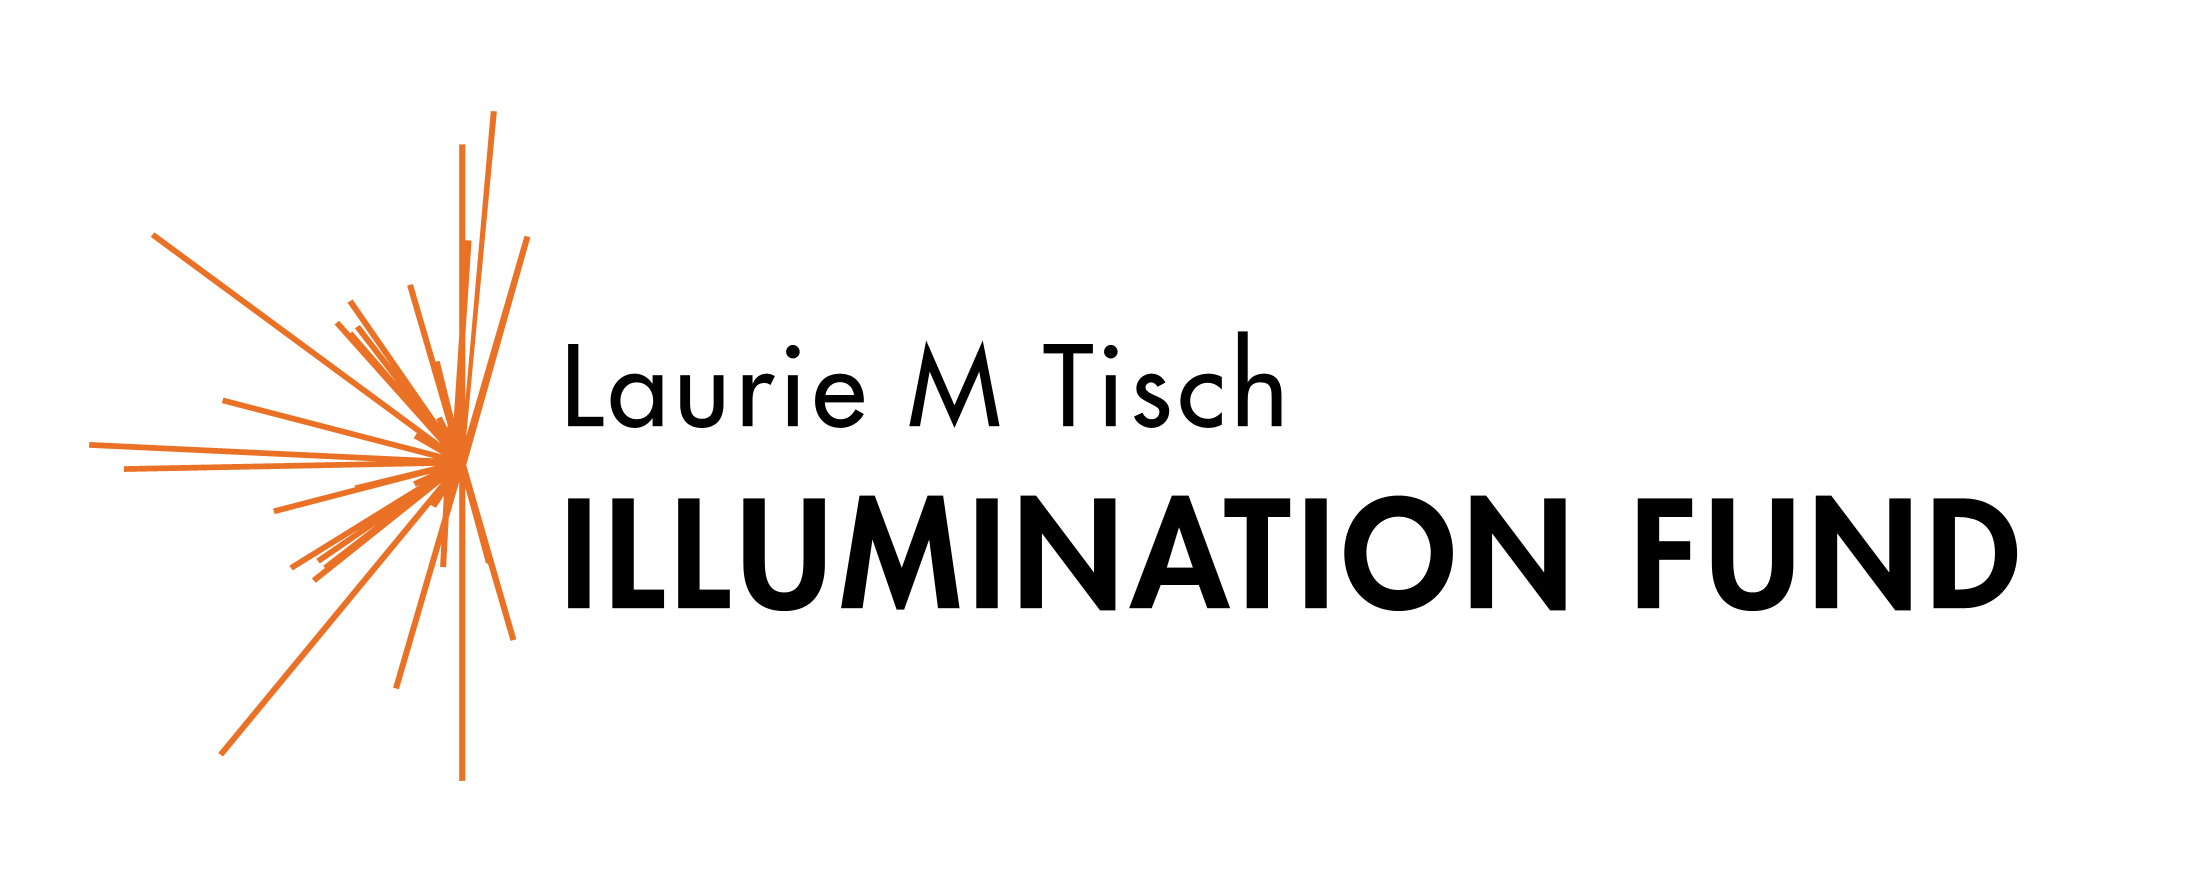 The Laurie M. Tisch Illumination Fund לוגו